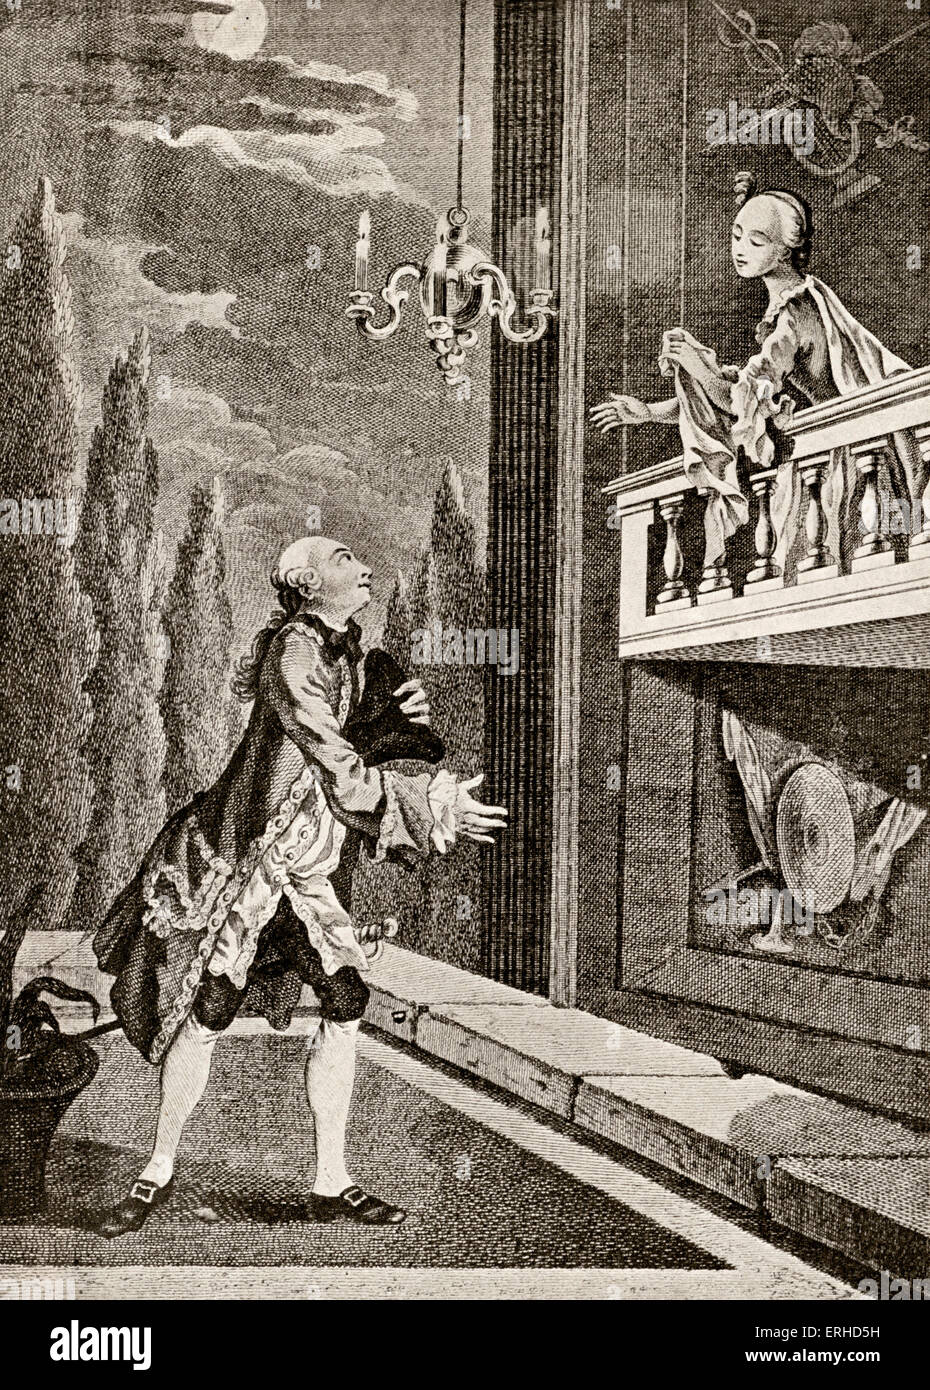 review of the balcony scene in william In the 'balcony' scene (act 2, scene 2), romeo and juliet's accidental union presents an opportunity to quell the raging feud between the montagues and capulets, whilst sharing their emotions of each other.